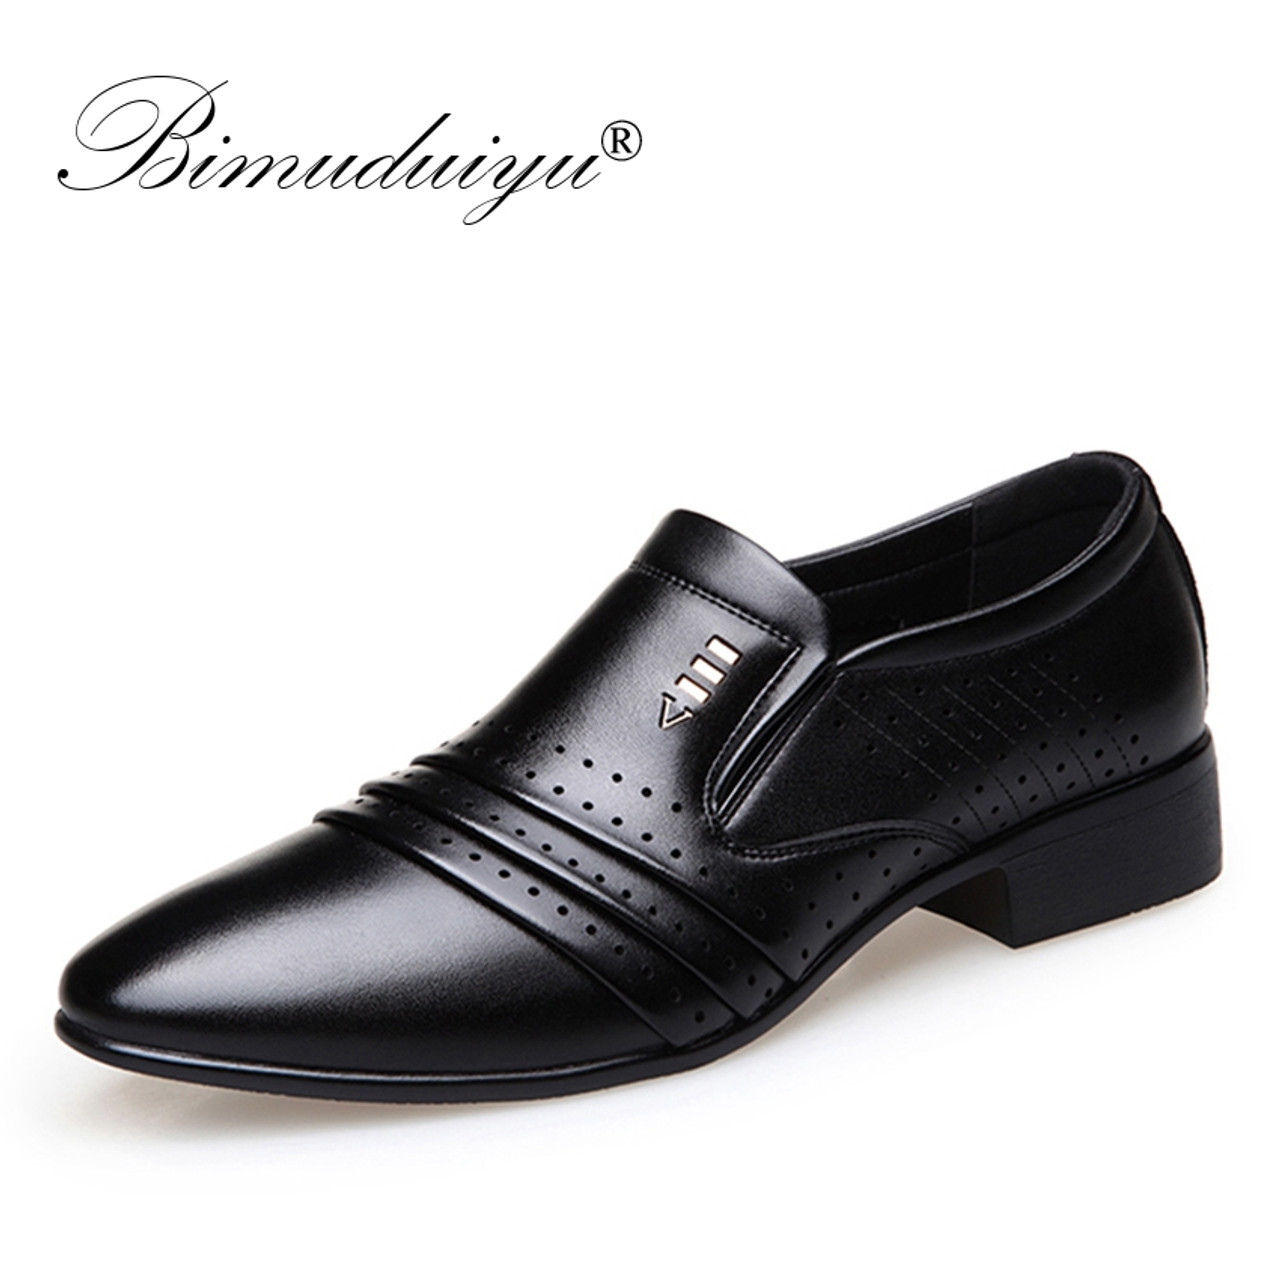 cd7096c688c ... BIMUDUIYU Luxury brand PU Leather Fashion Men Business Dress Loafers  Pointy Black Shoes Oxford Breathable Formal ...